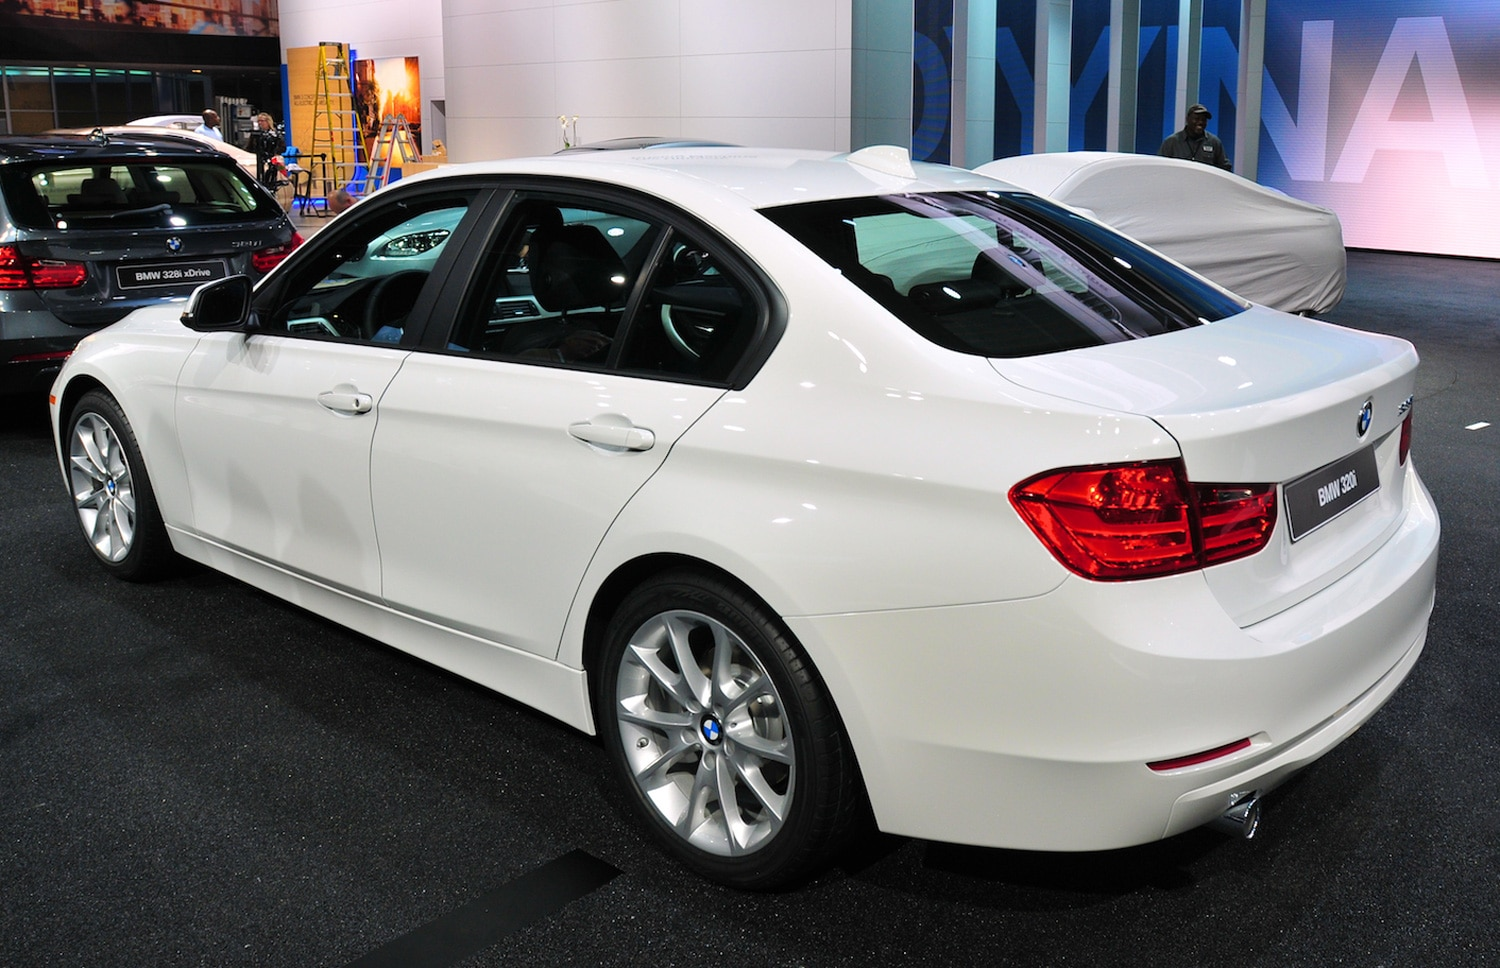 detroit 2013 2013 bmw 320i drops 60 horsepower saves 4300 over 328i. Black Bedroom Furniture Sets. Home Design Ideas